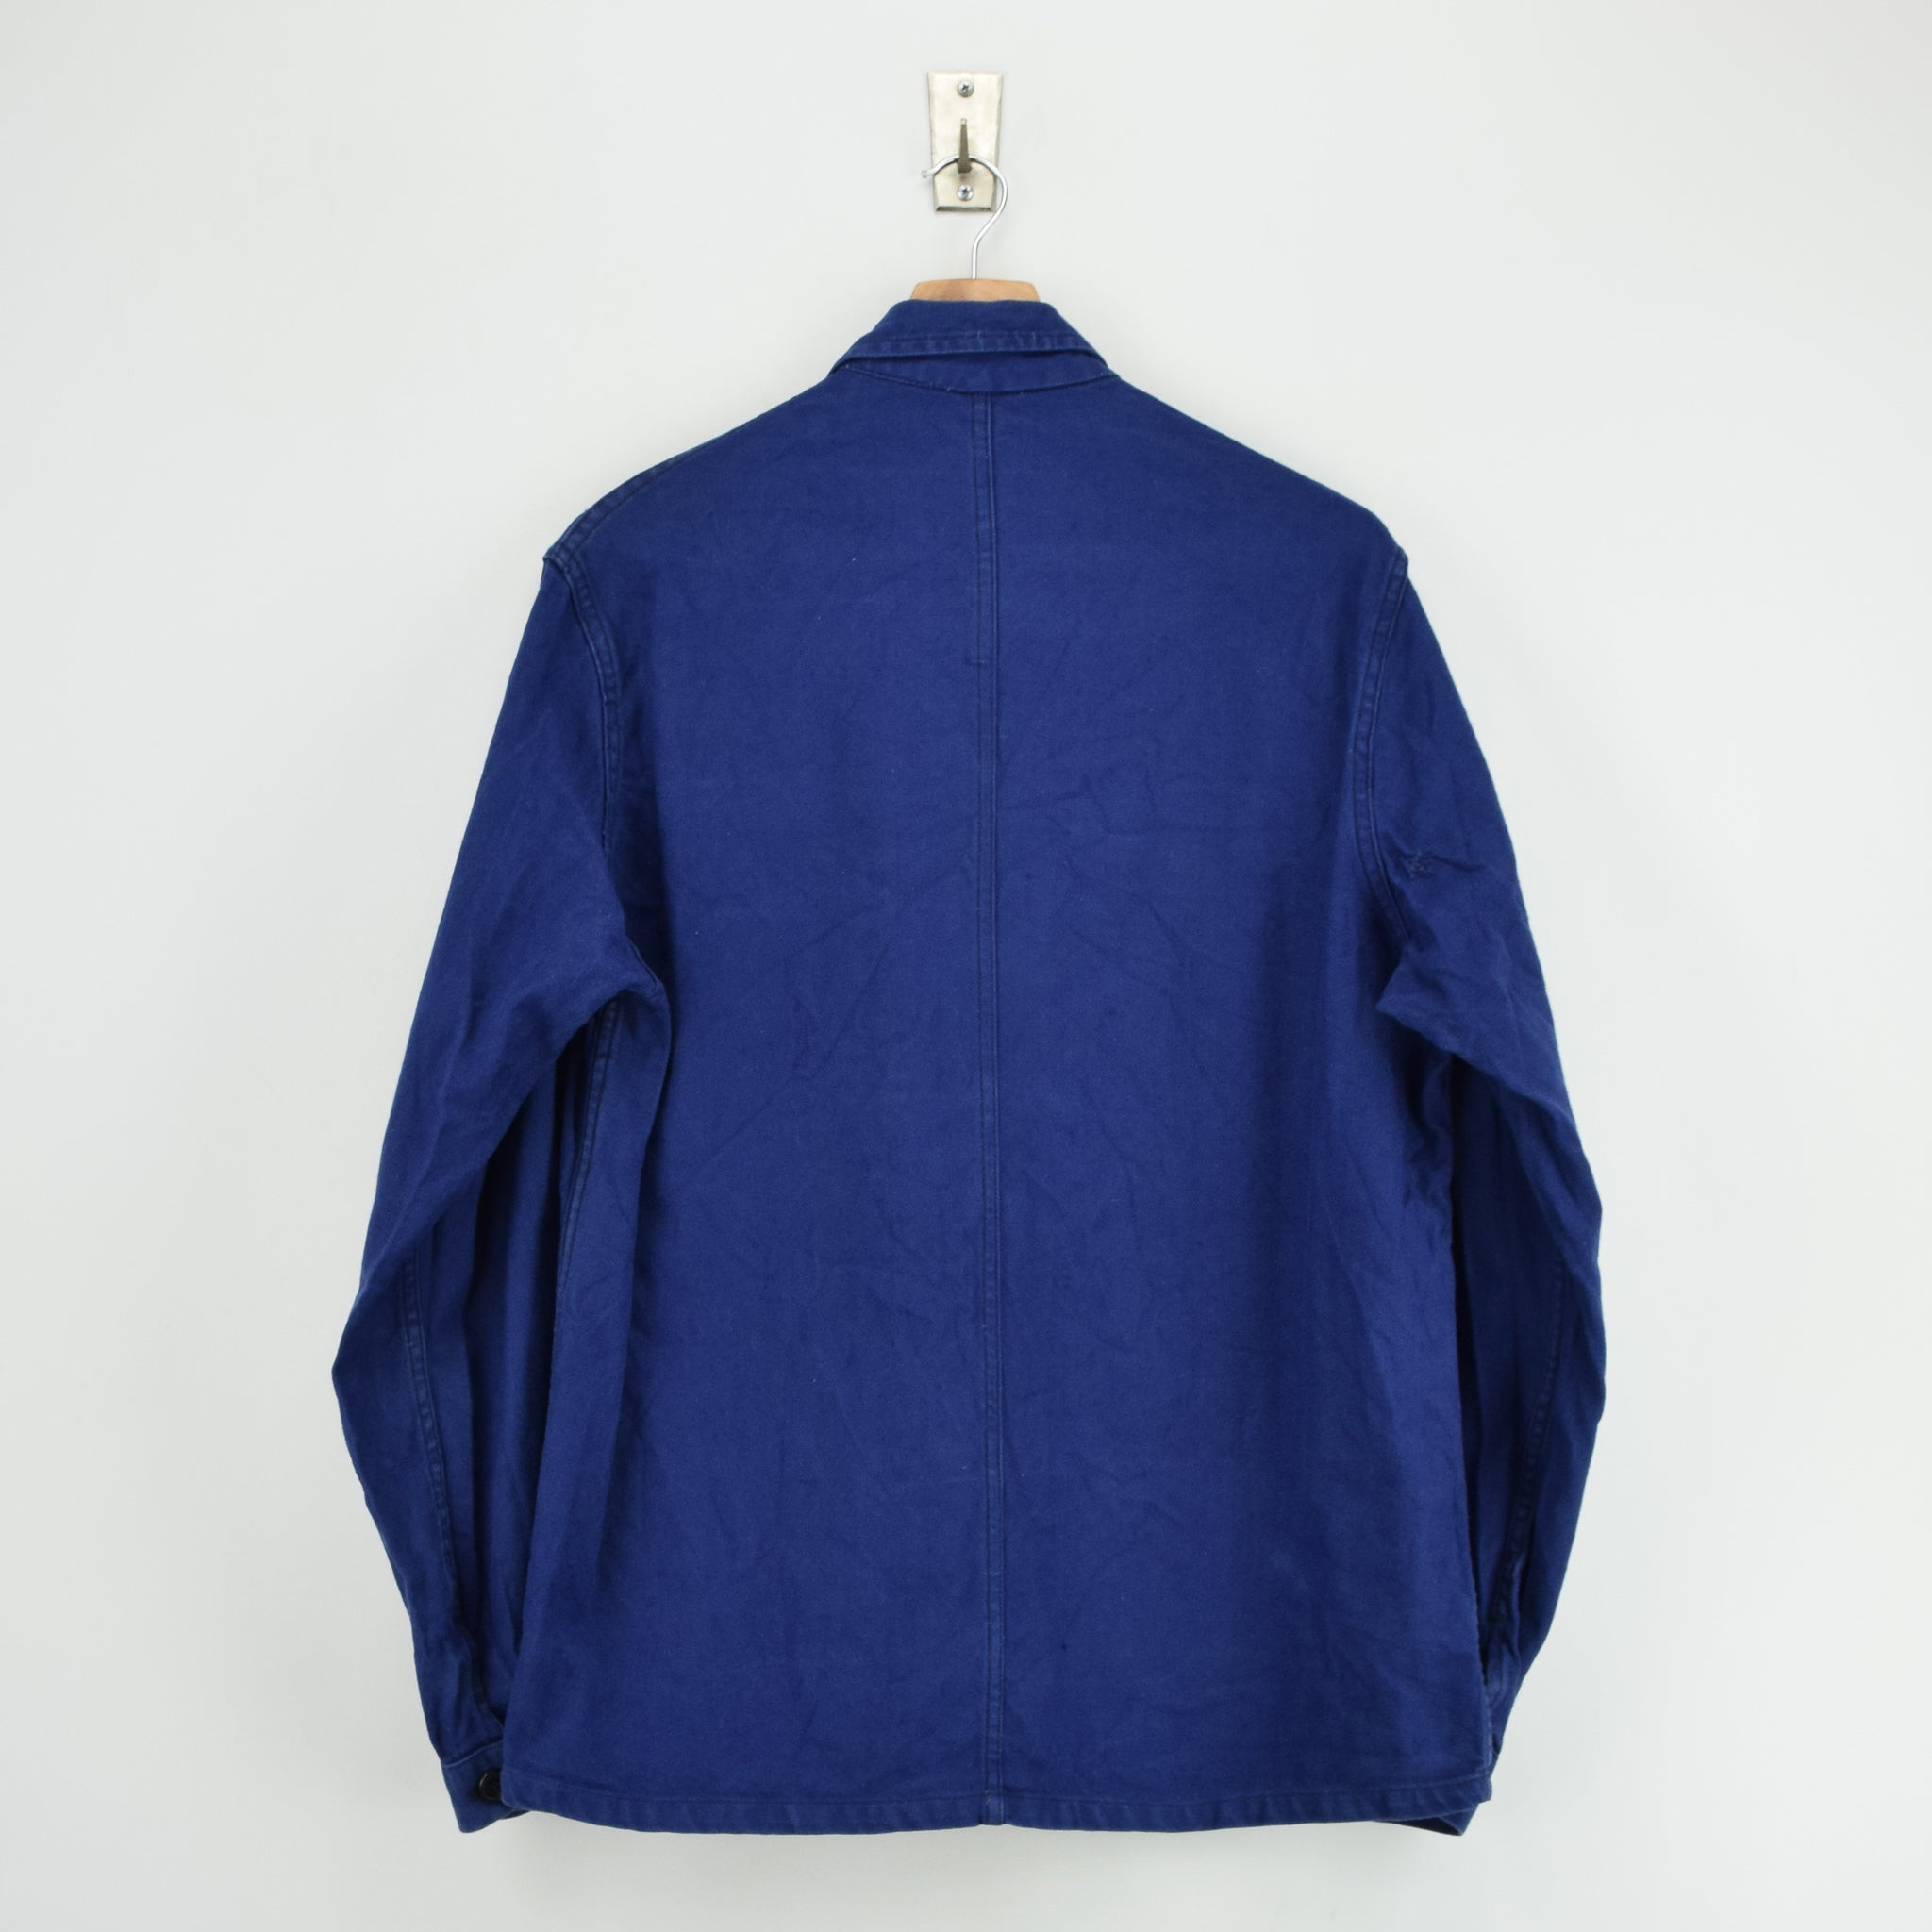 Vintage Indigo Blue French Worker Sanforized Cotton Chore Jacket M back